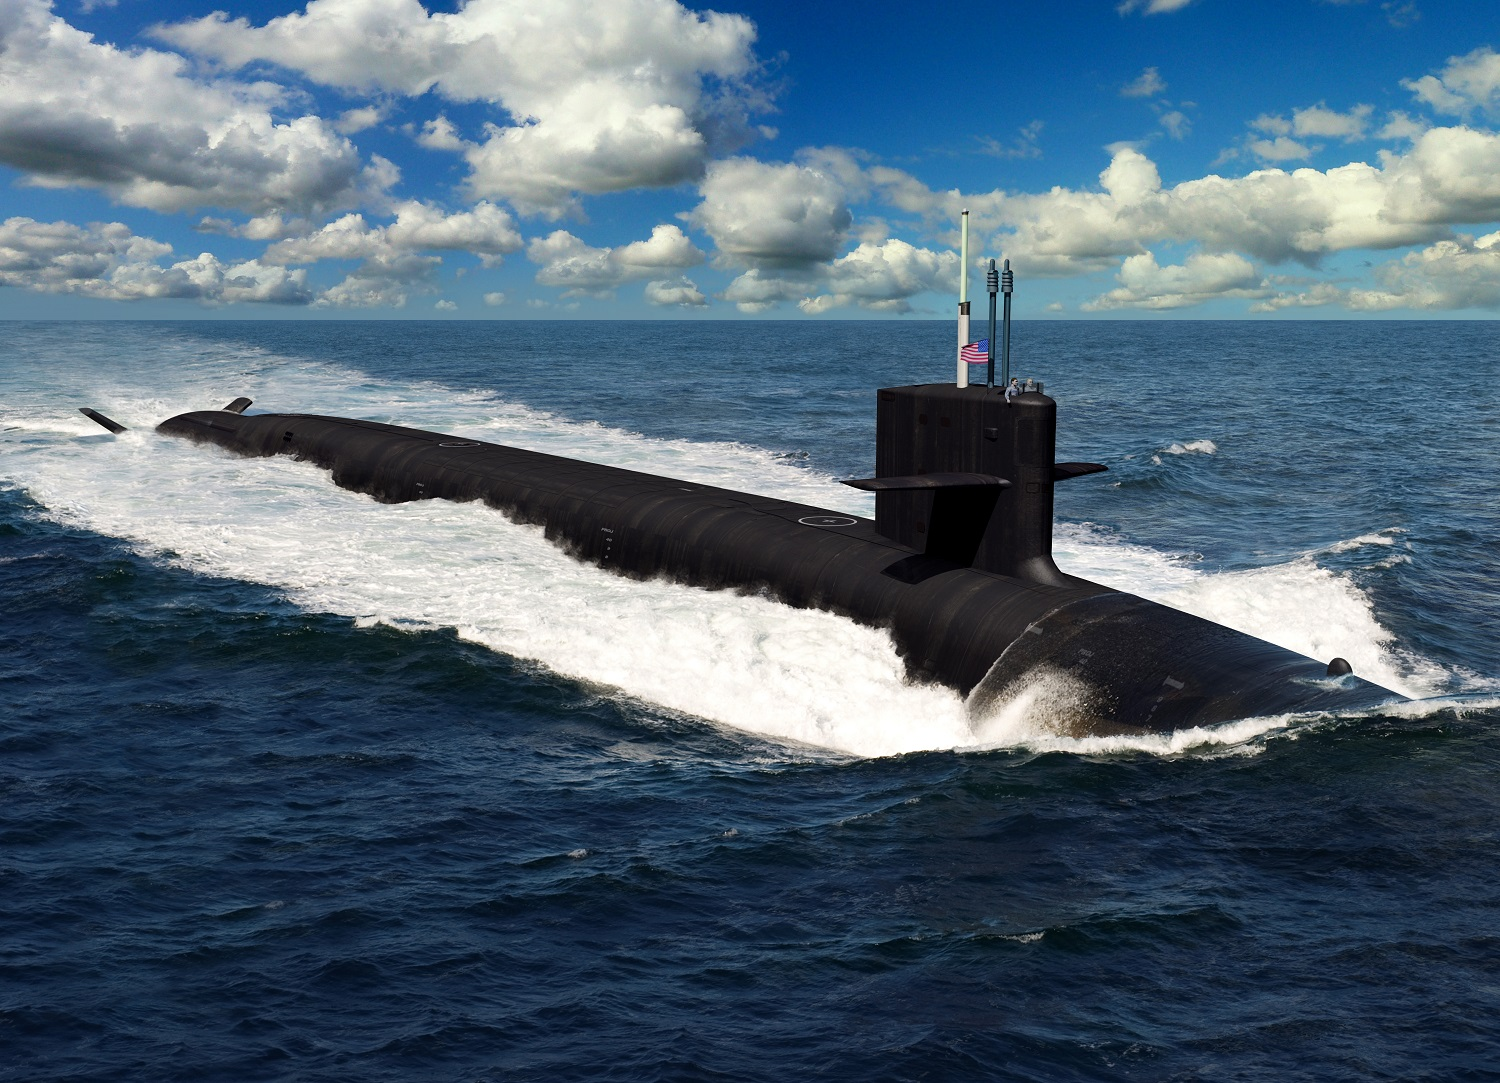 The Navy's New Columbia-Class Nuclear Submarine Is Armed with a New Missile